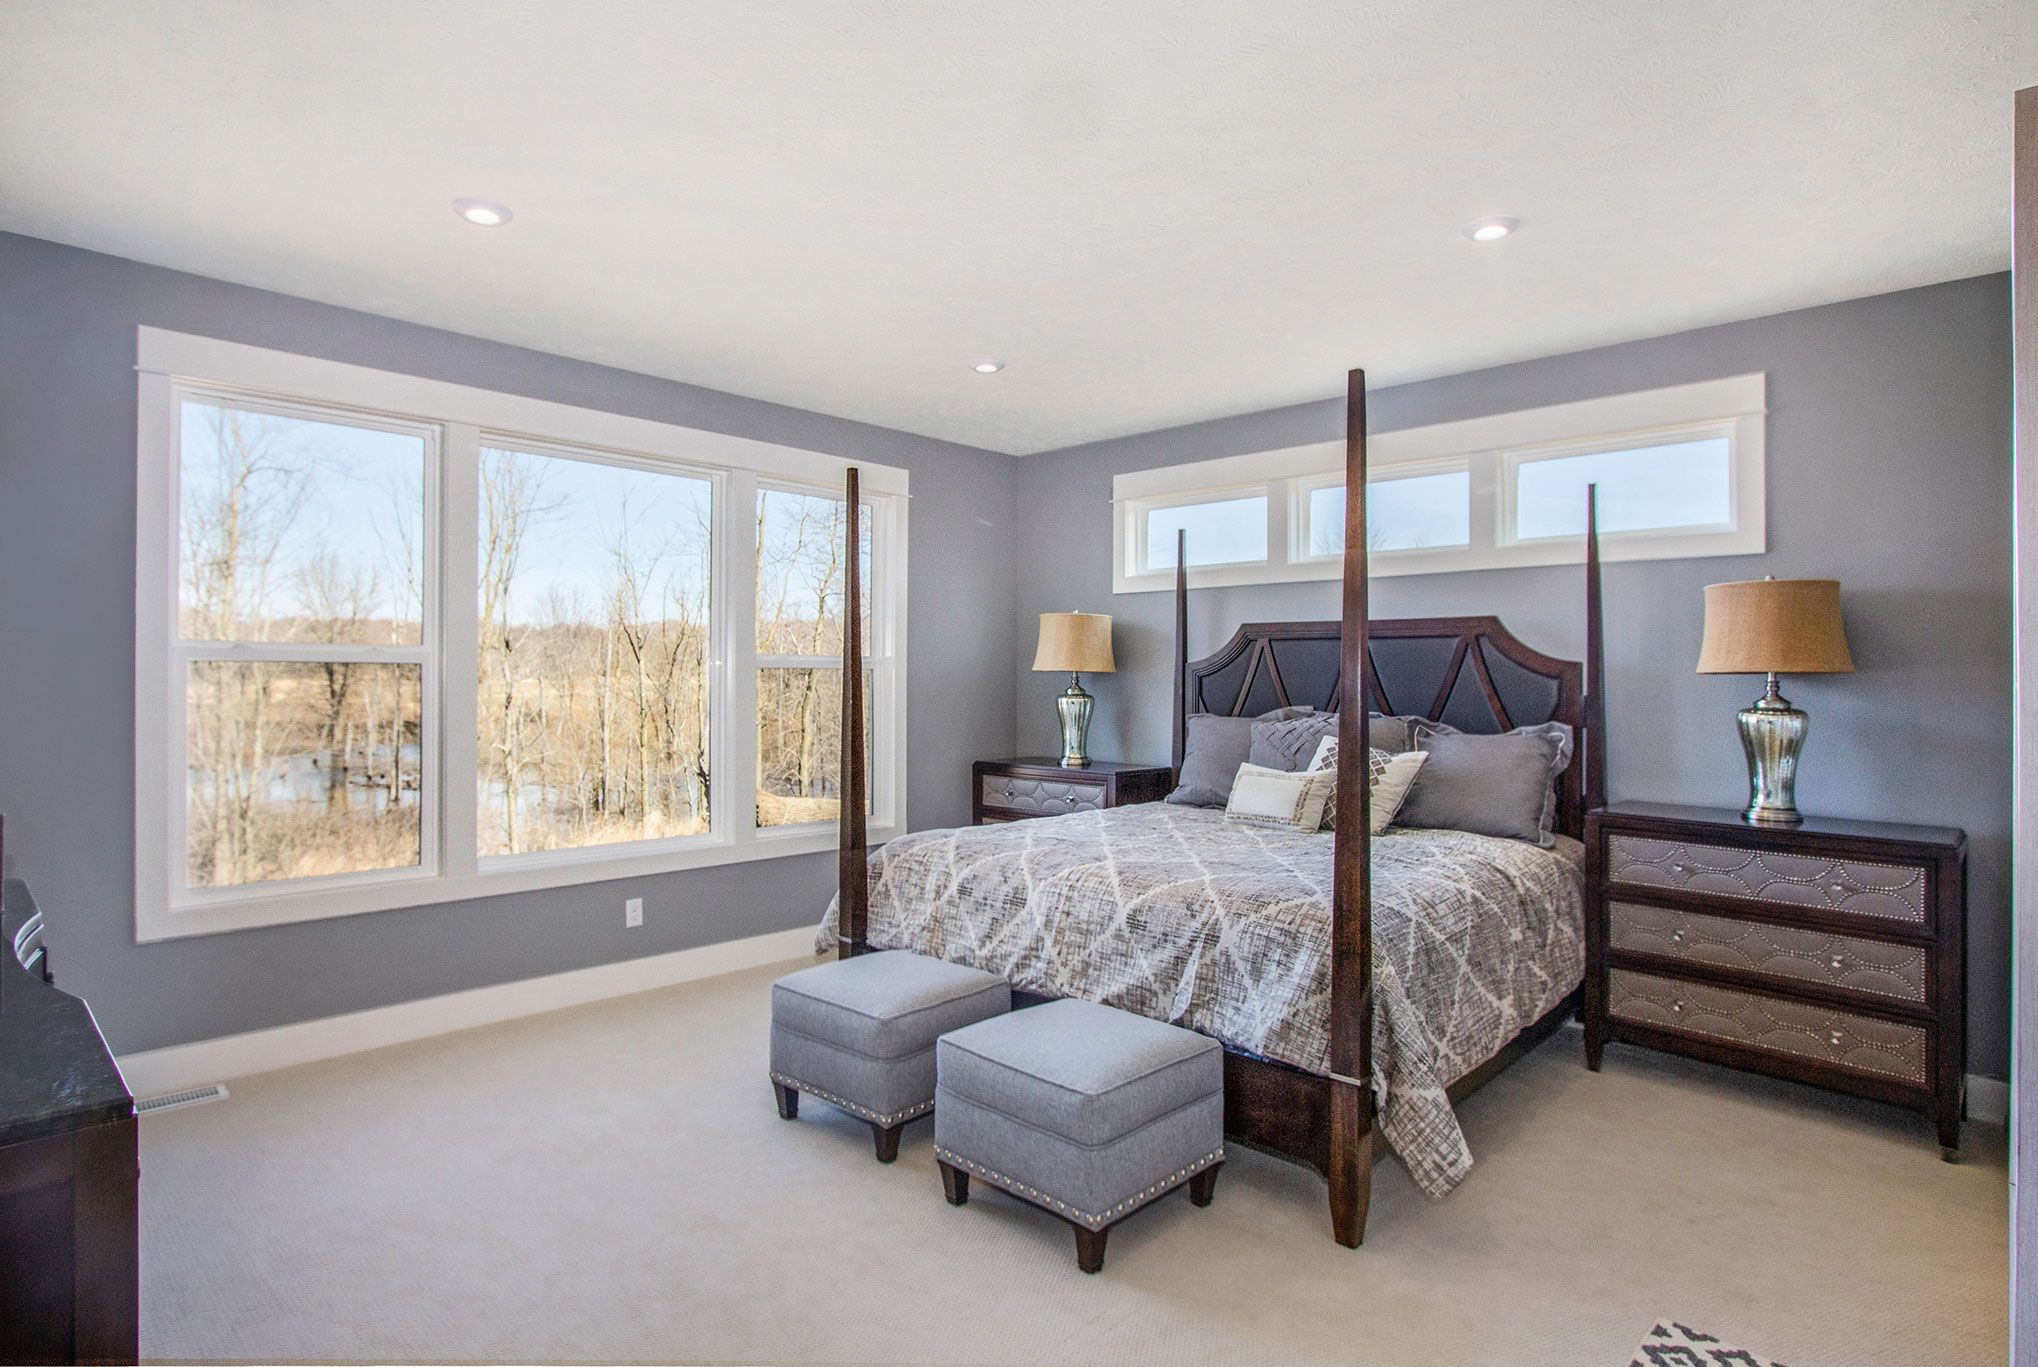 Bedroom featured in The Willow ll Americana By Eastbrook Homes Inc. in Lansing, MI